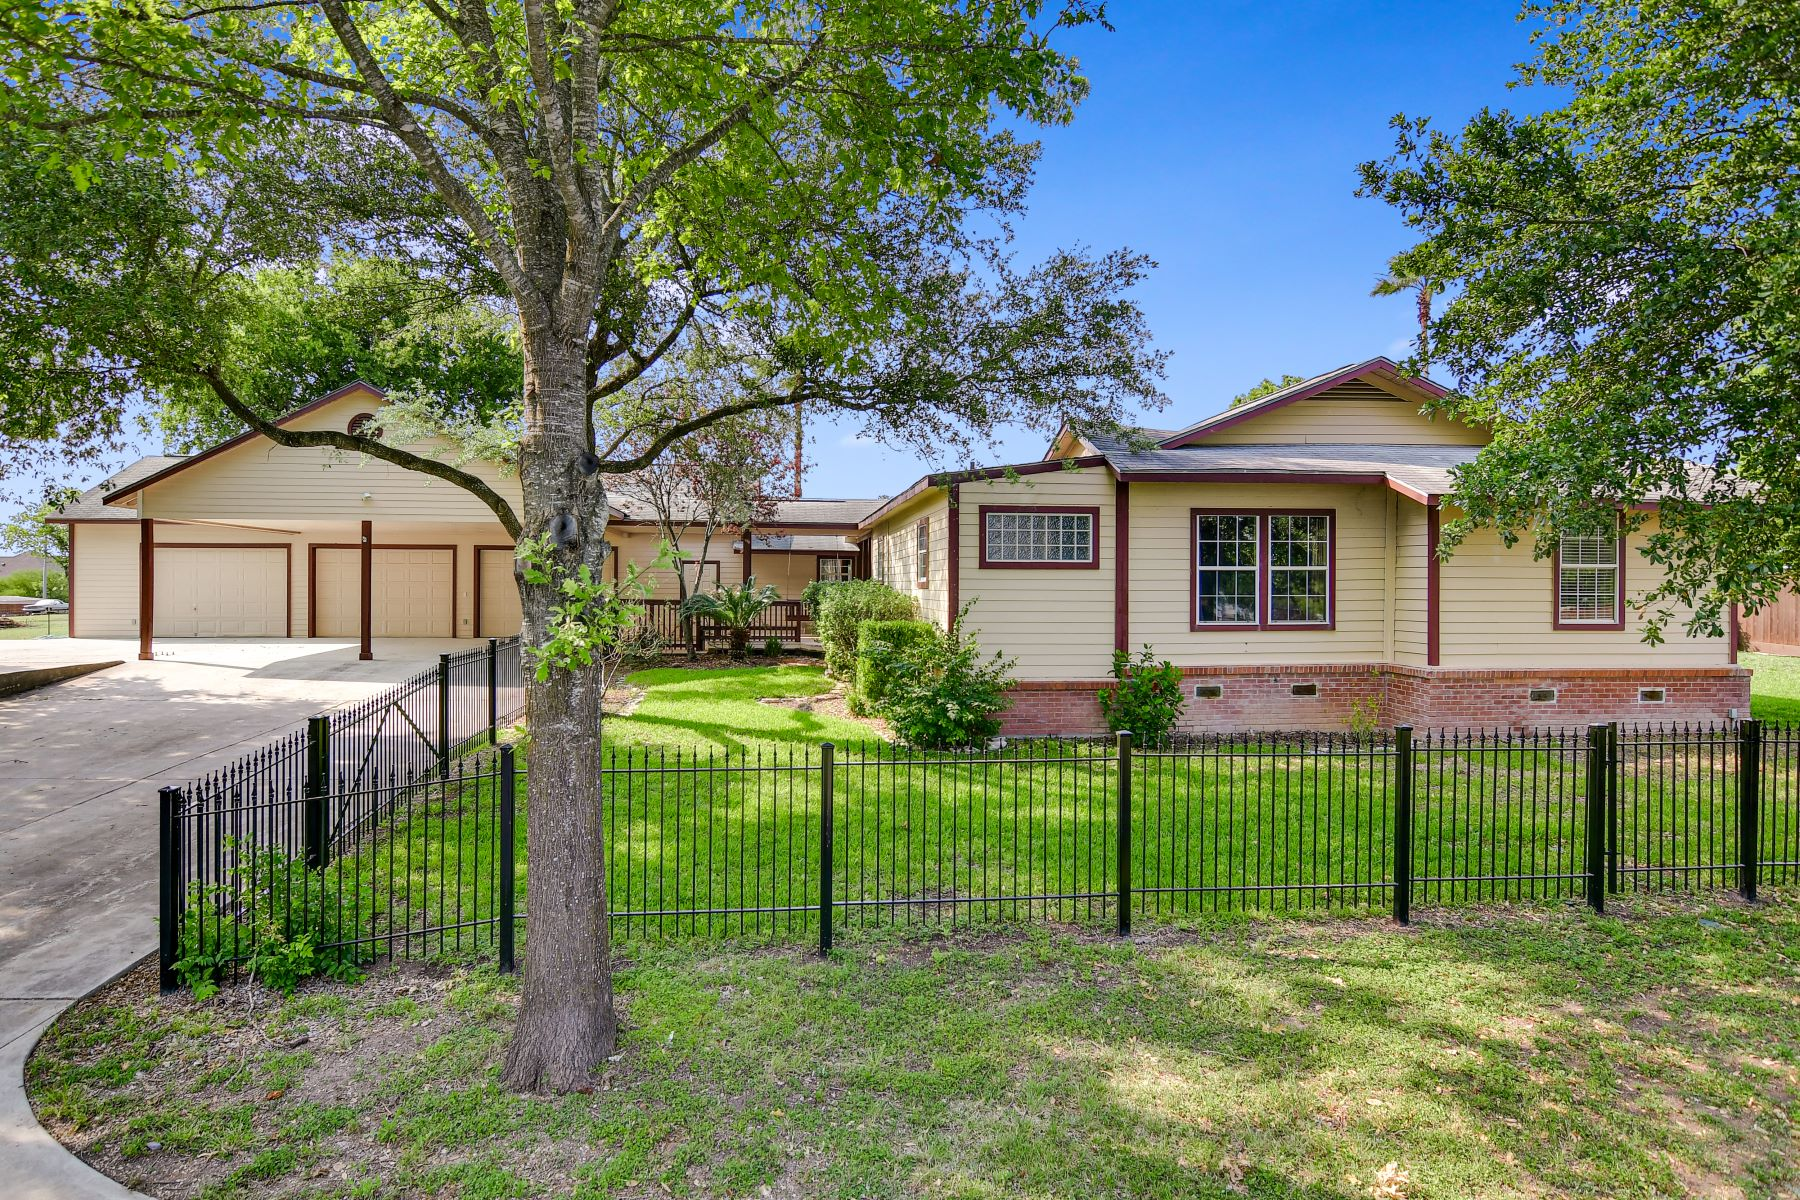 Single Family Homes for Sale at 579 Weil Road, Cibolo, TX 78108 579 Weil Road Cibolo, Texas 78108 United States